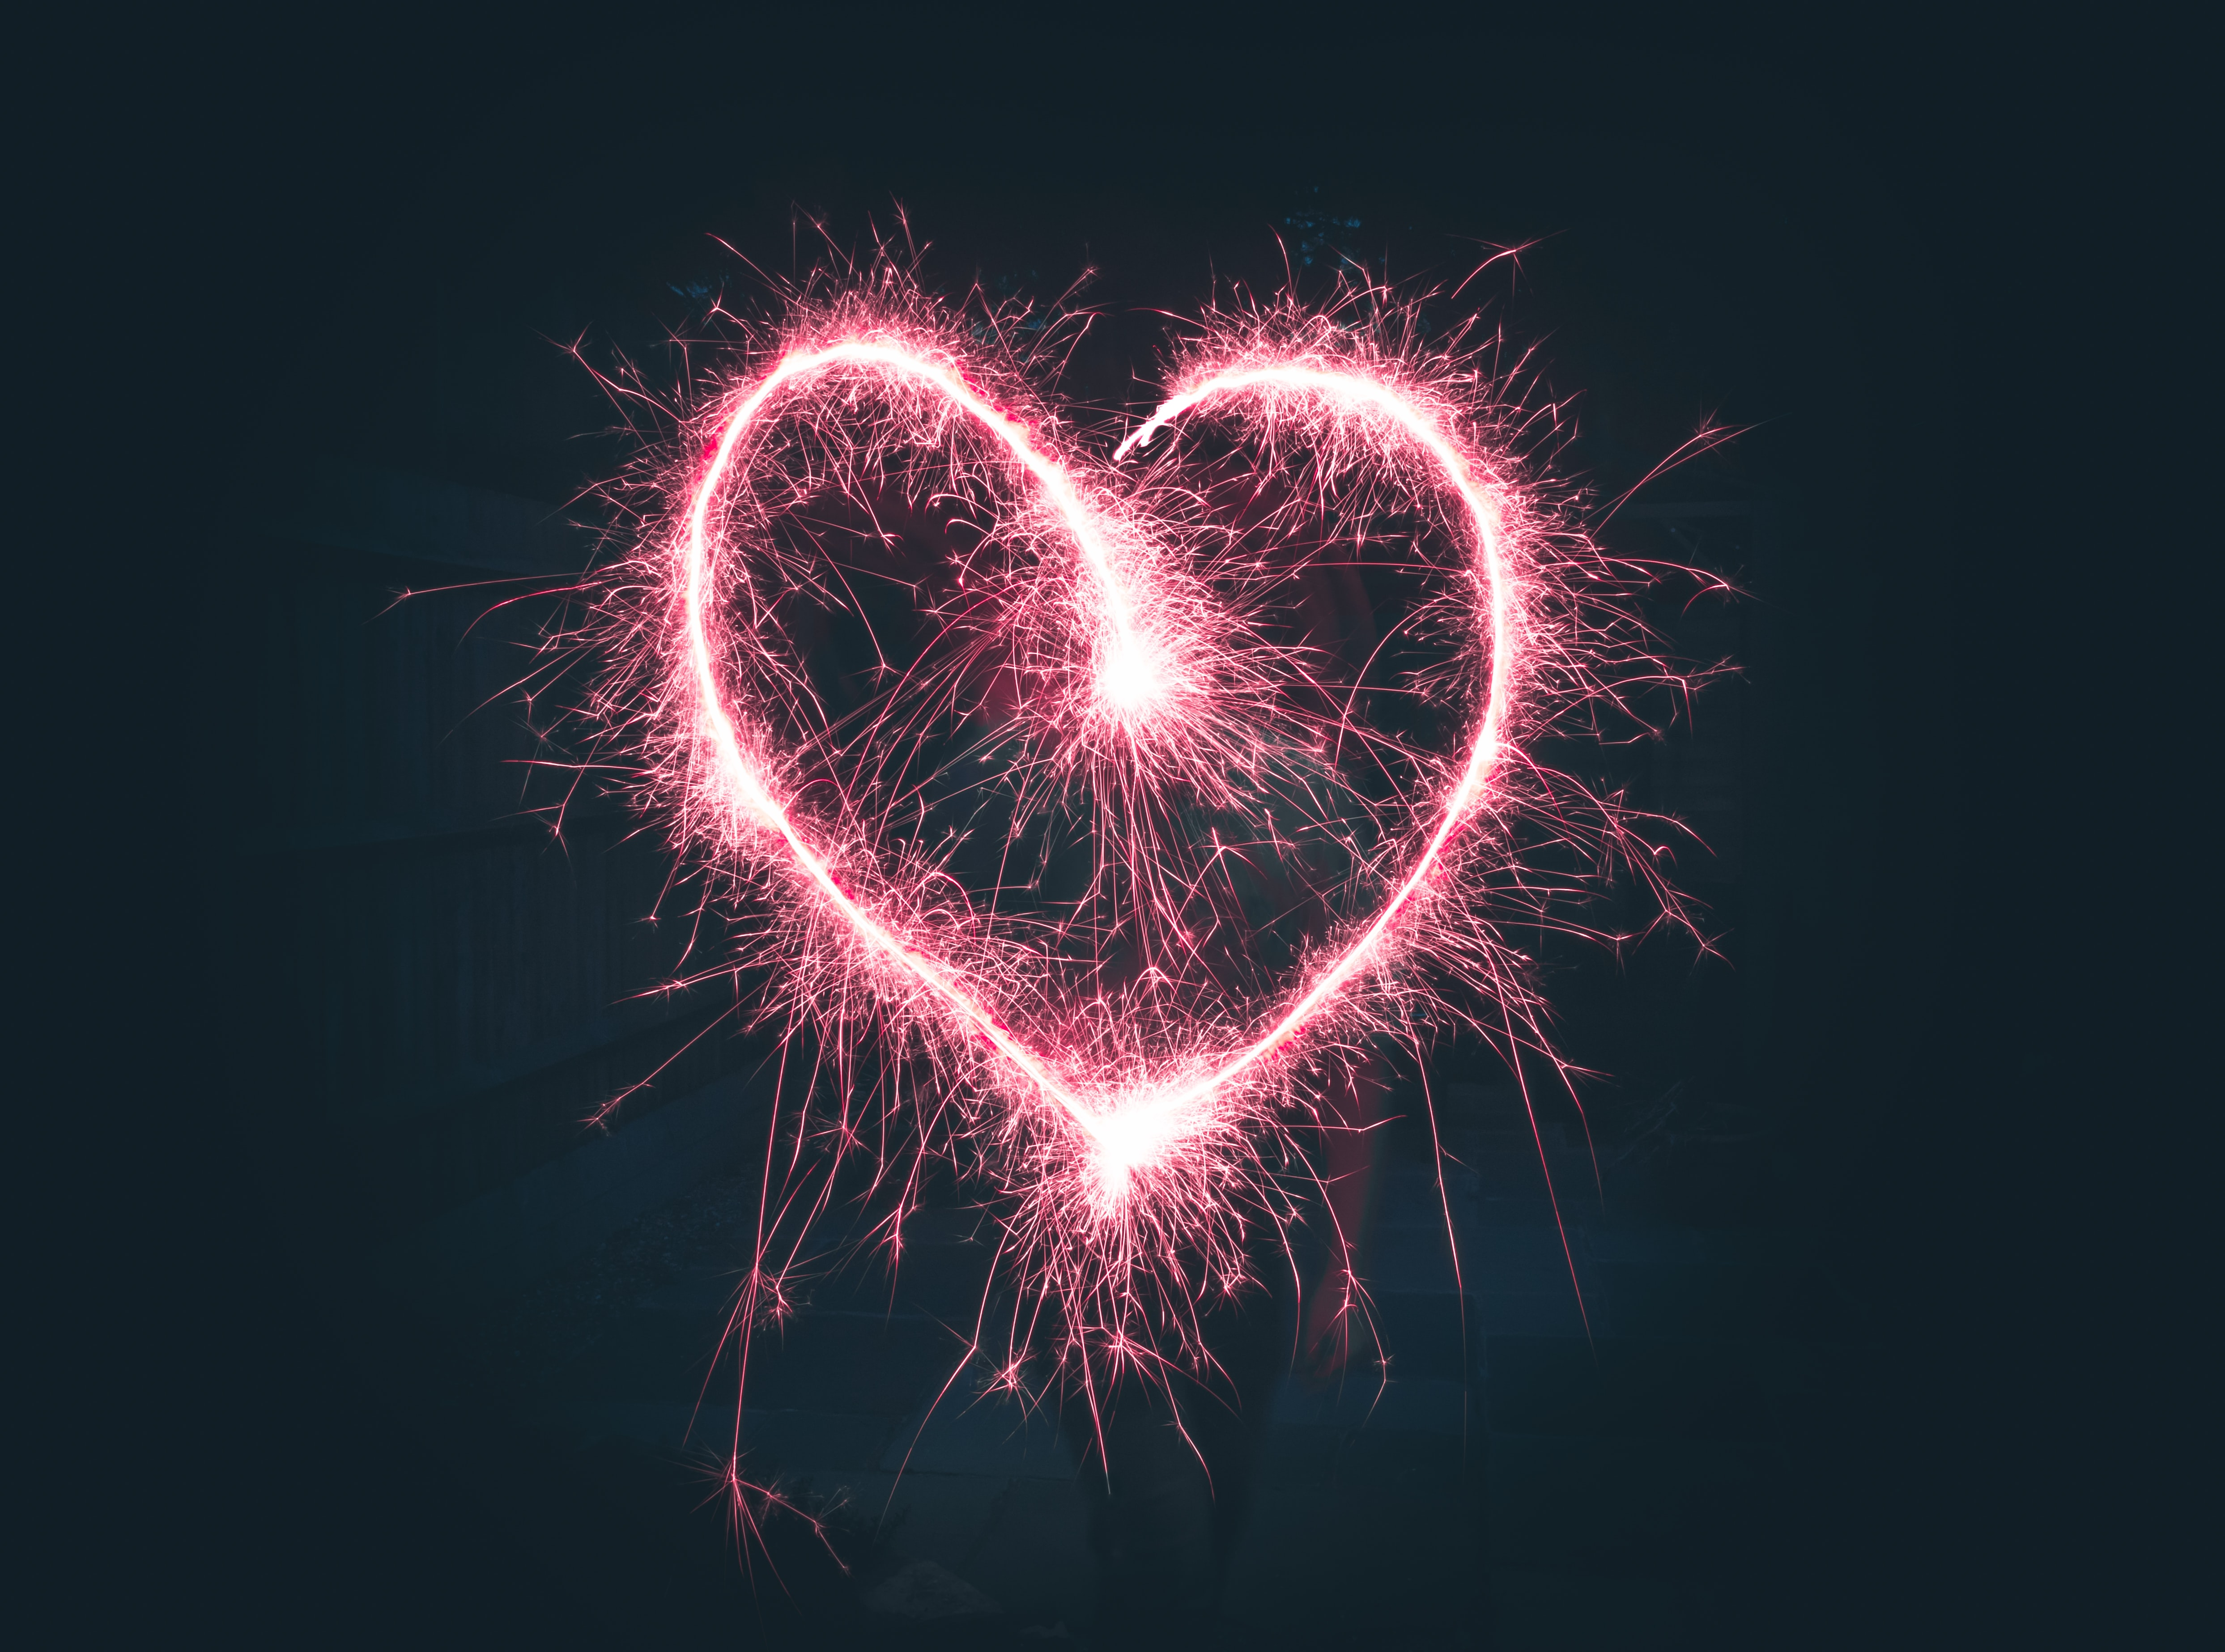 The shape of a heart made from a bright purple sparkler